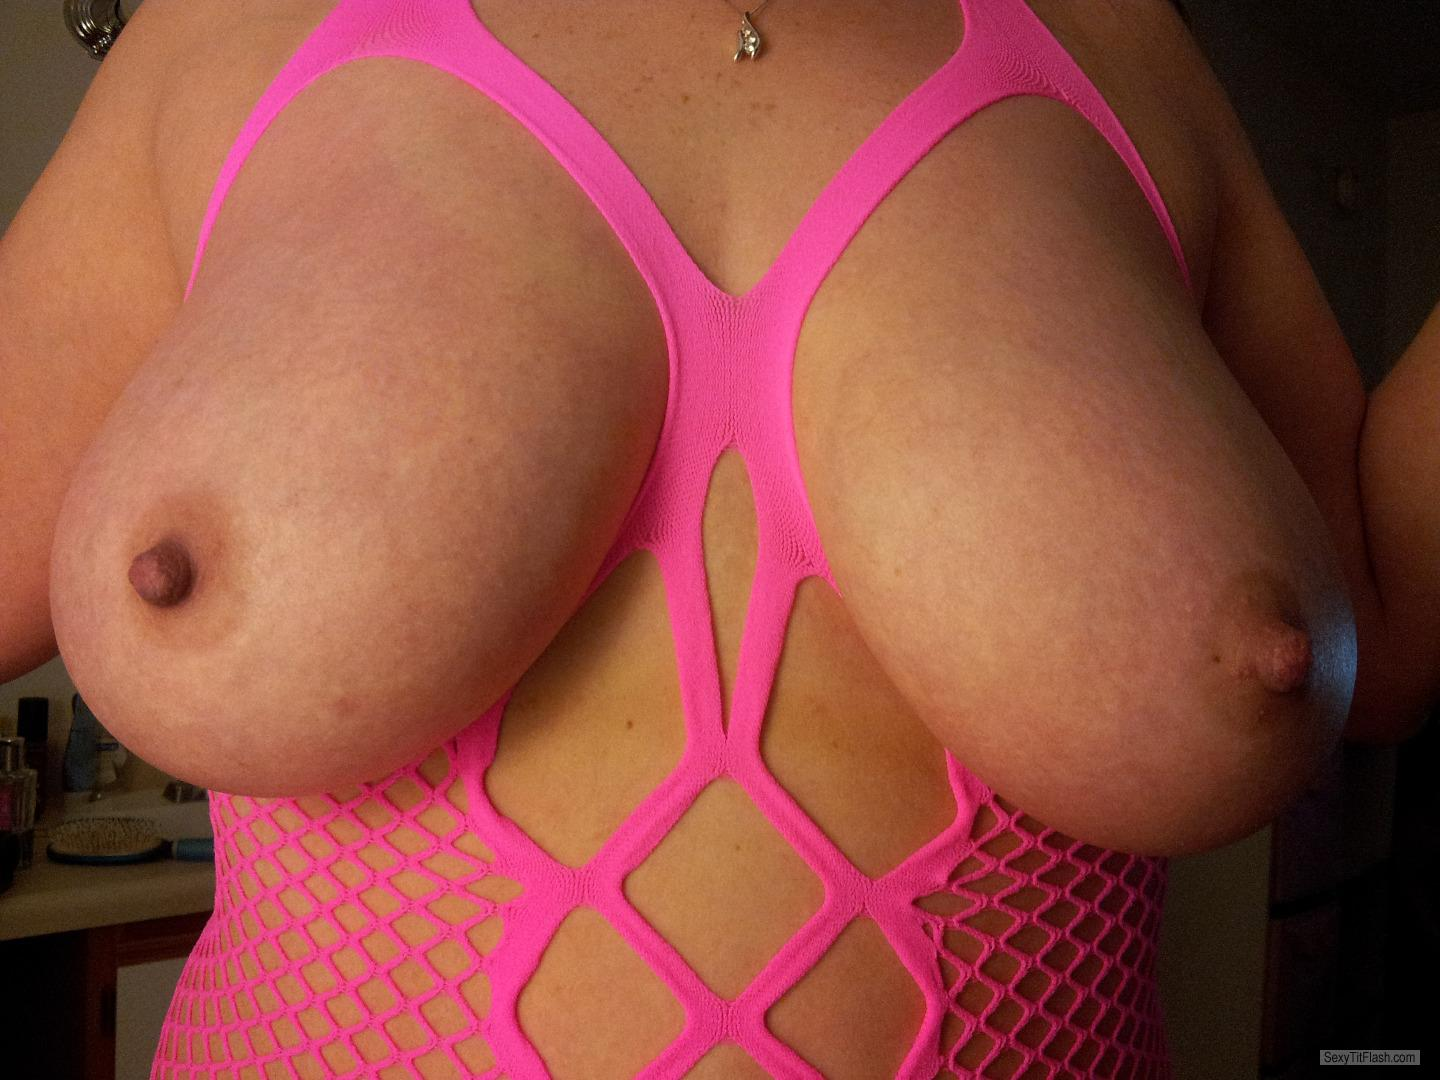 Tit Flash: Wife's Big Tits - AverageGirl from United States